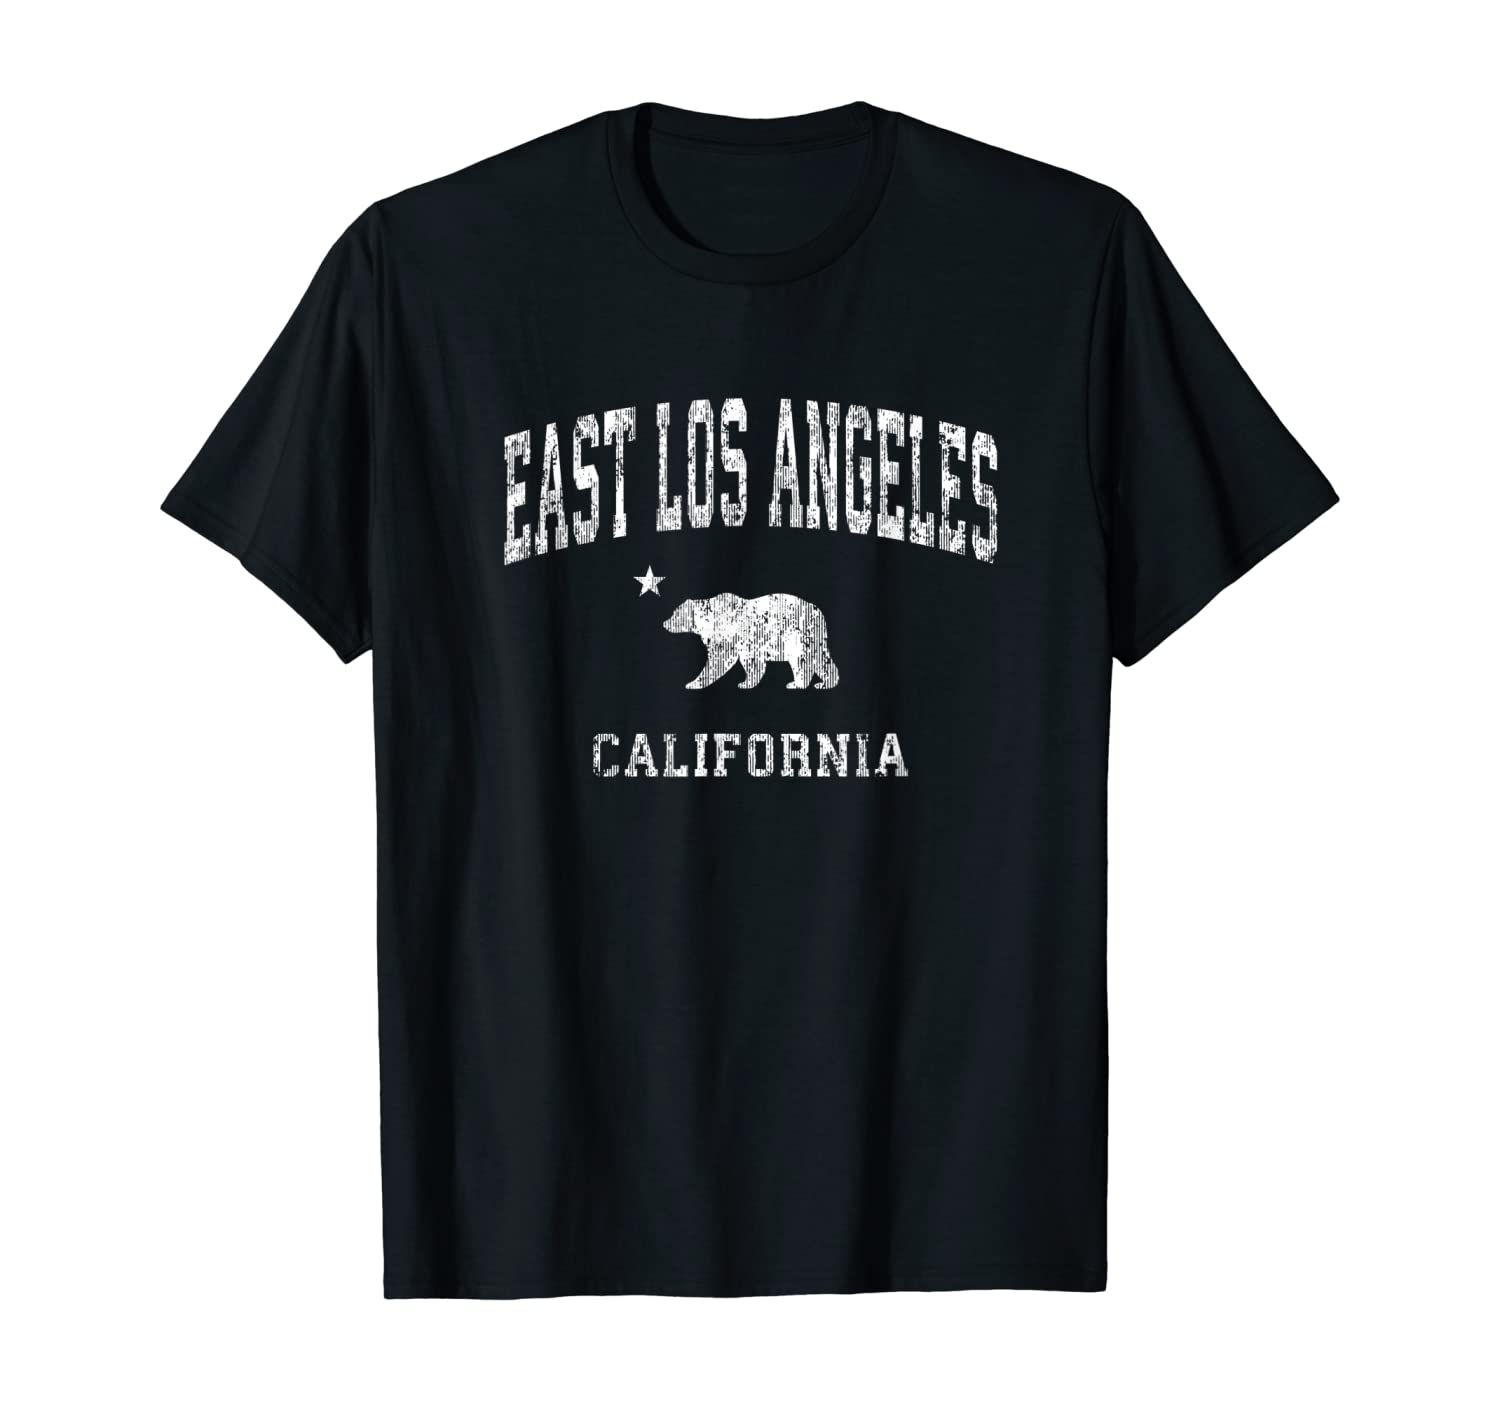 East Los Angeles California Vintage Distressed Sports Design T-Shirt